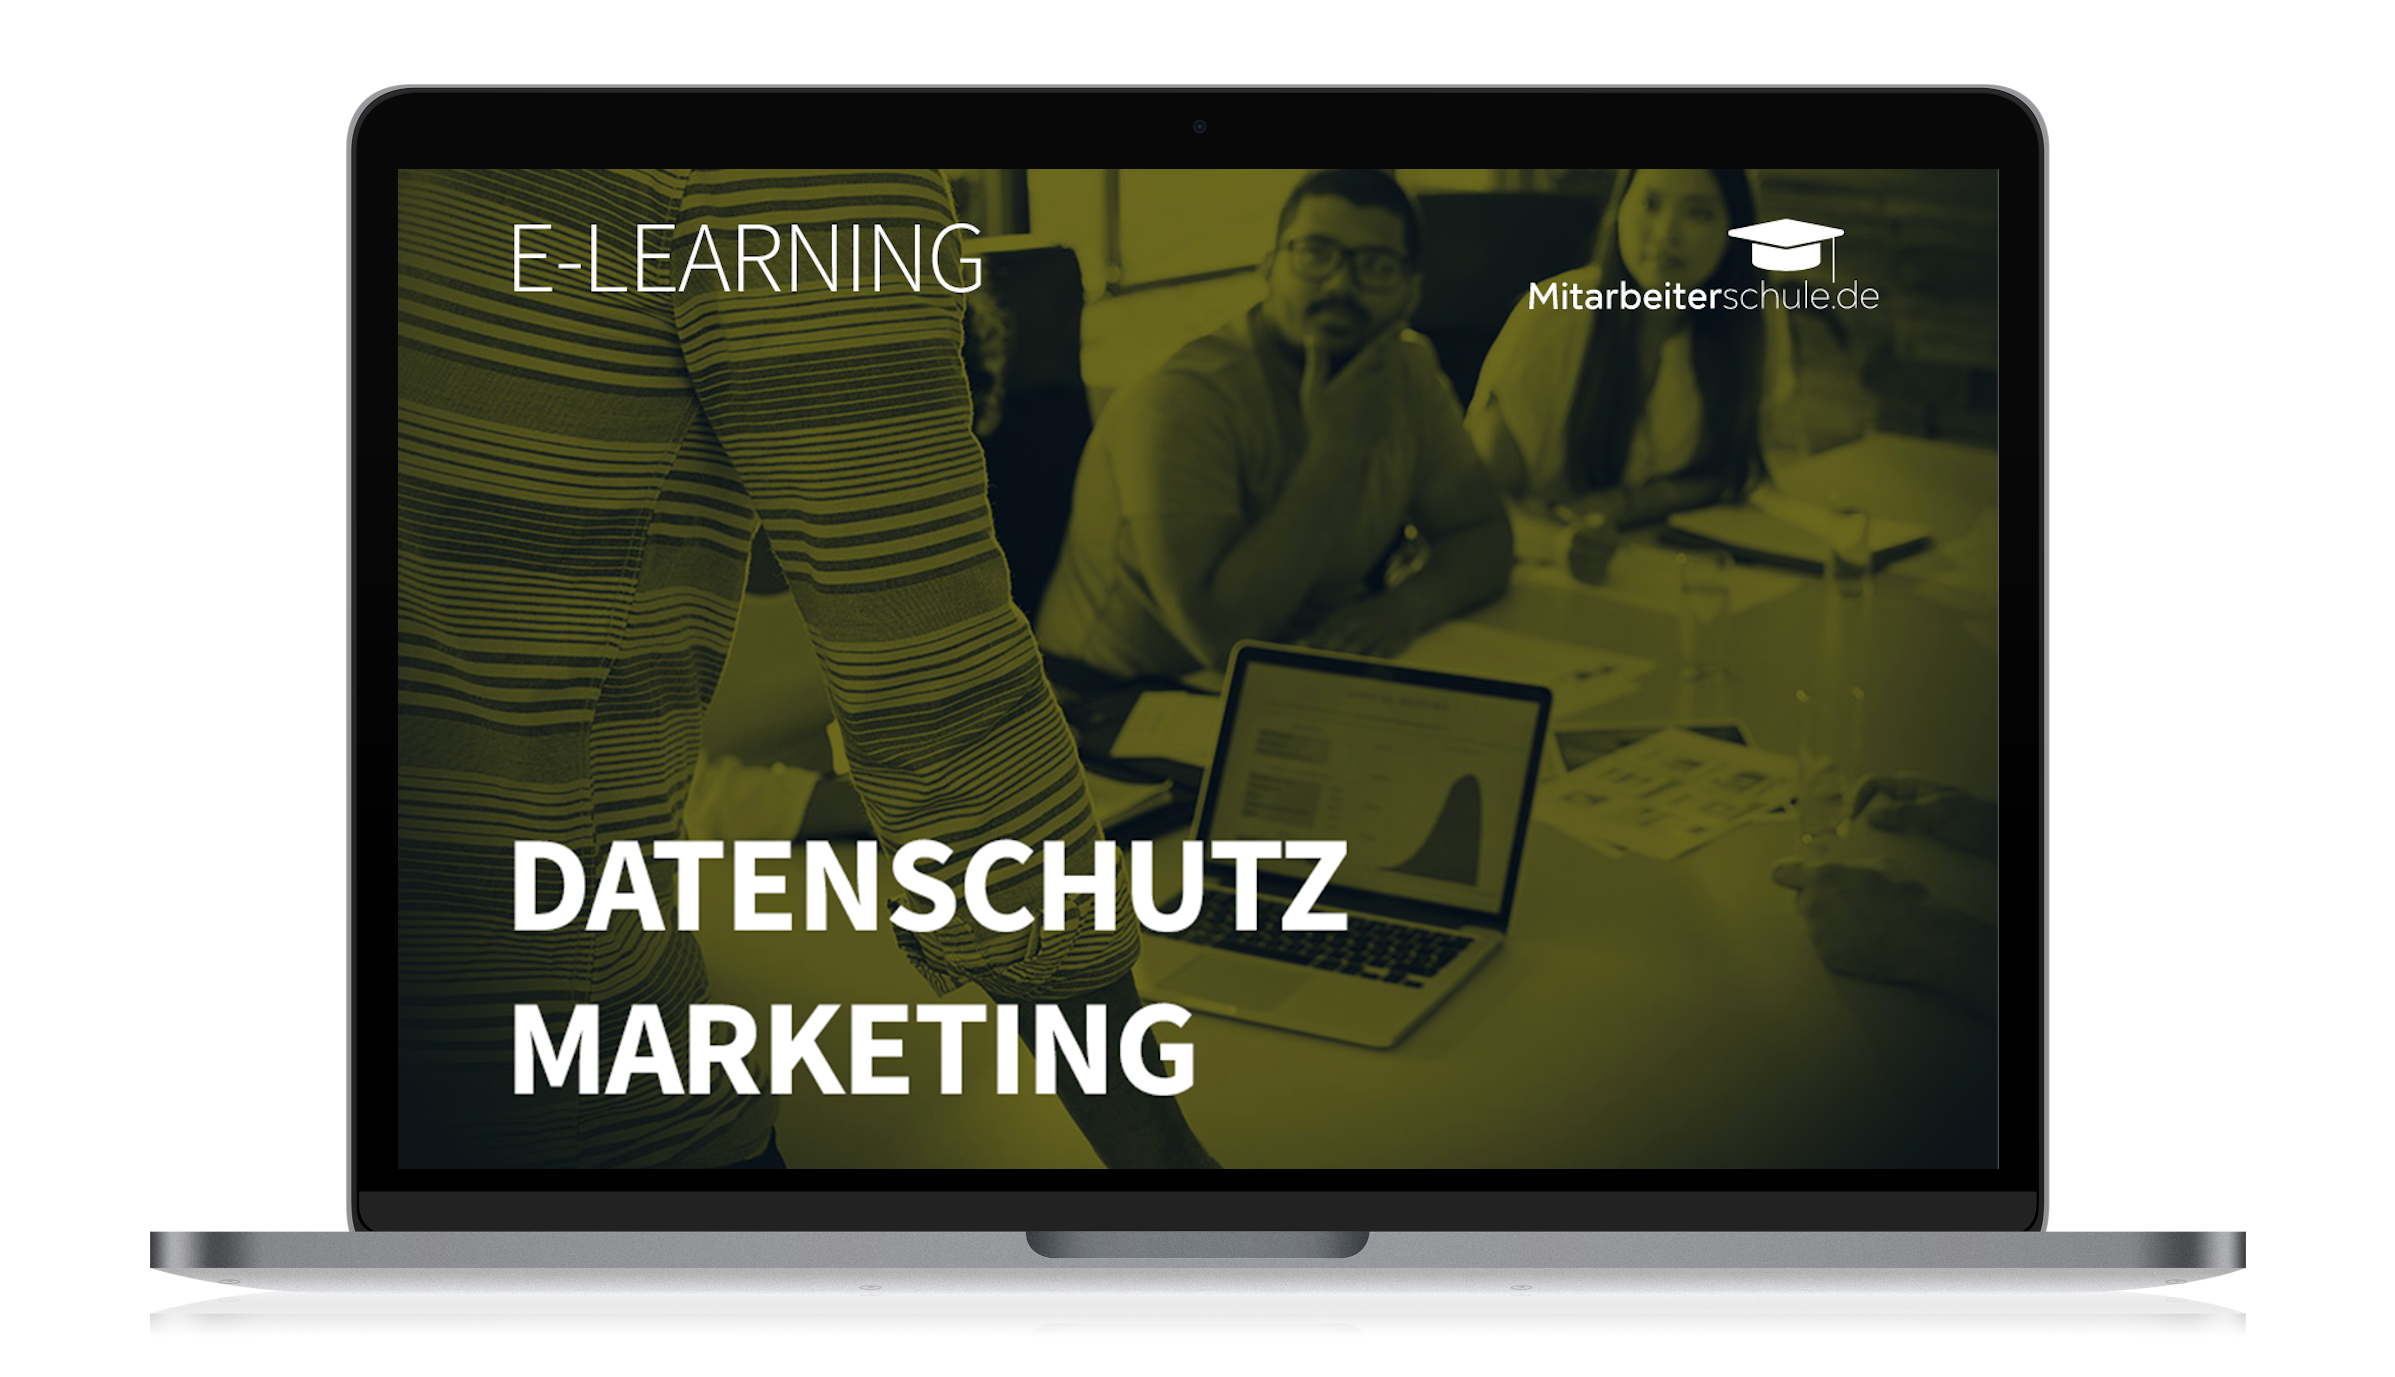 Datenschutz-Marketing-Kurs